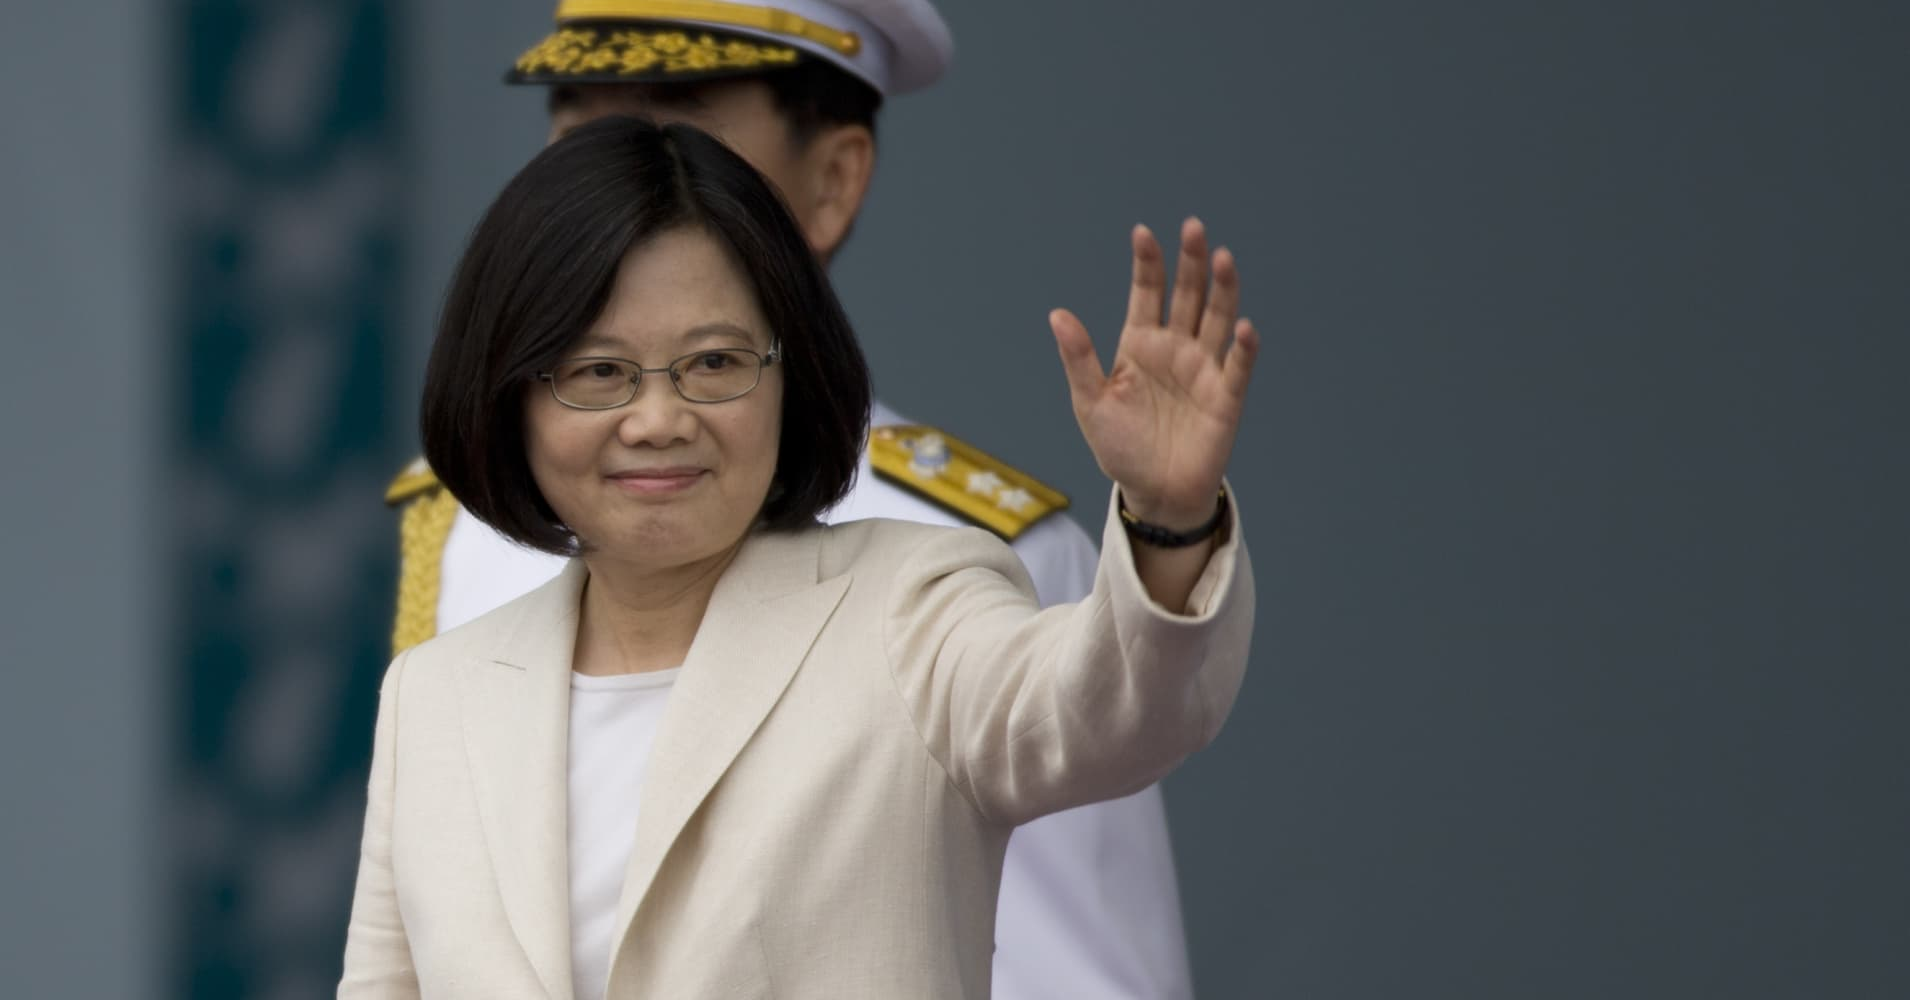 Taiwan tells China to use peaceful means to resolve differences